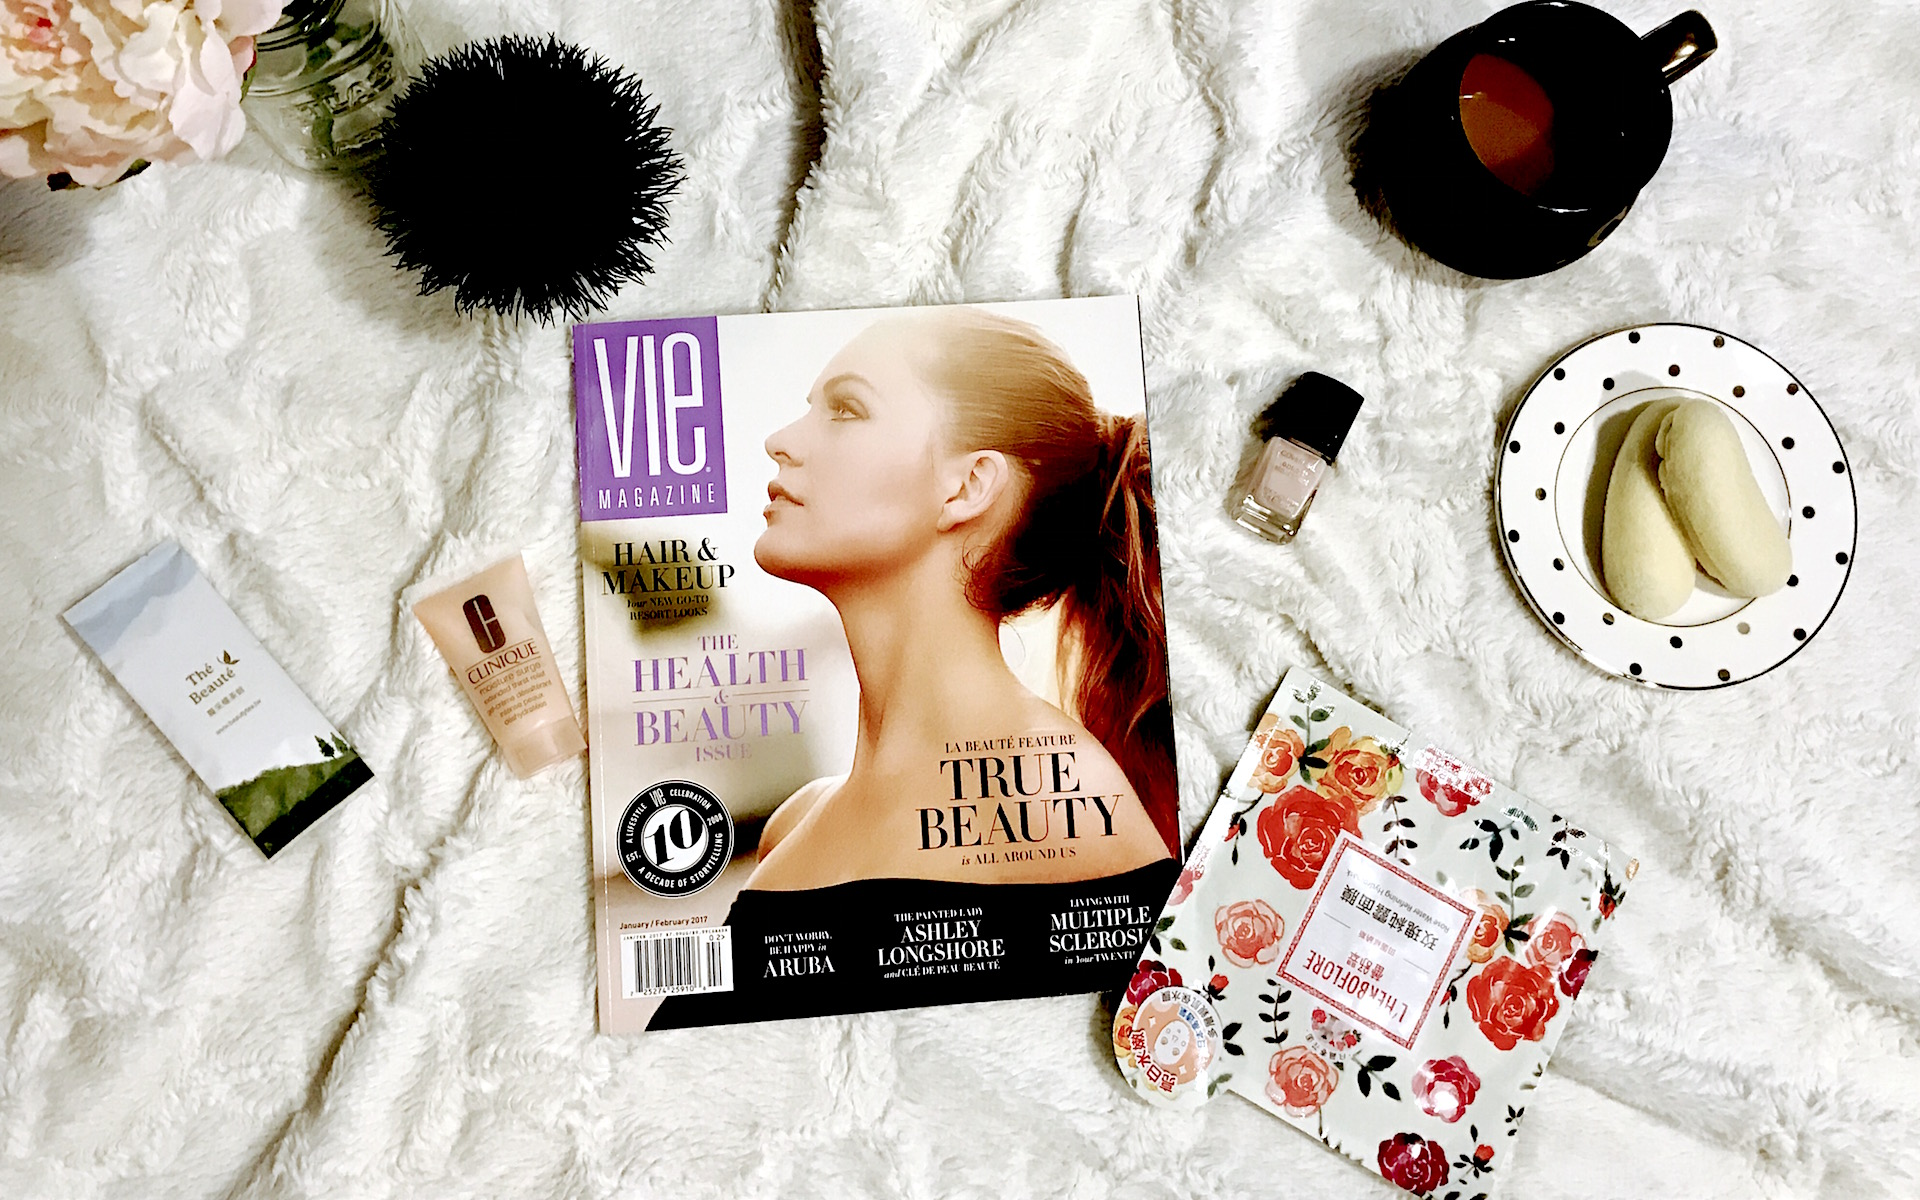 vie magazine flat lay health and beauty issue 2017